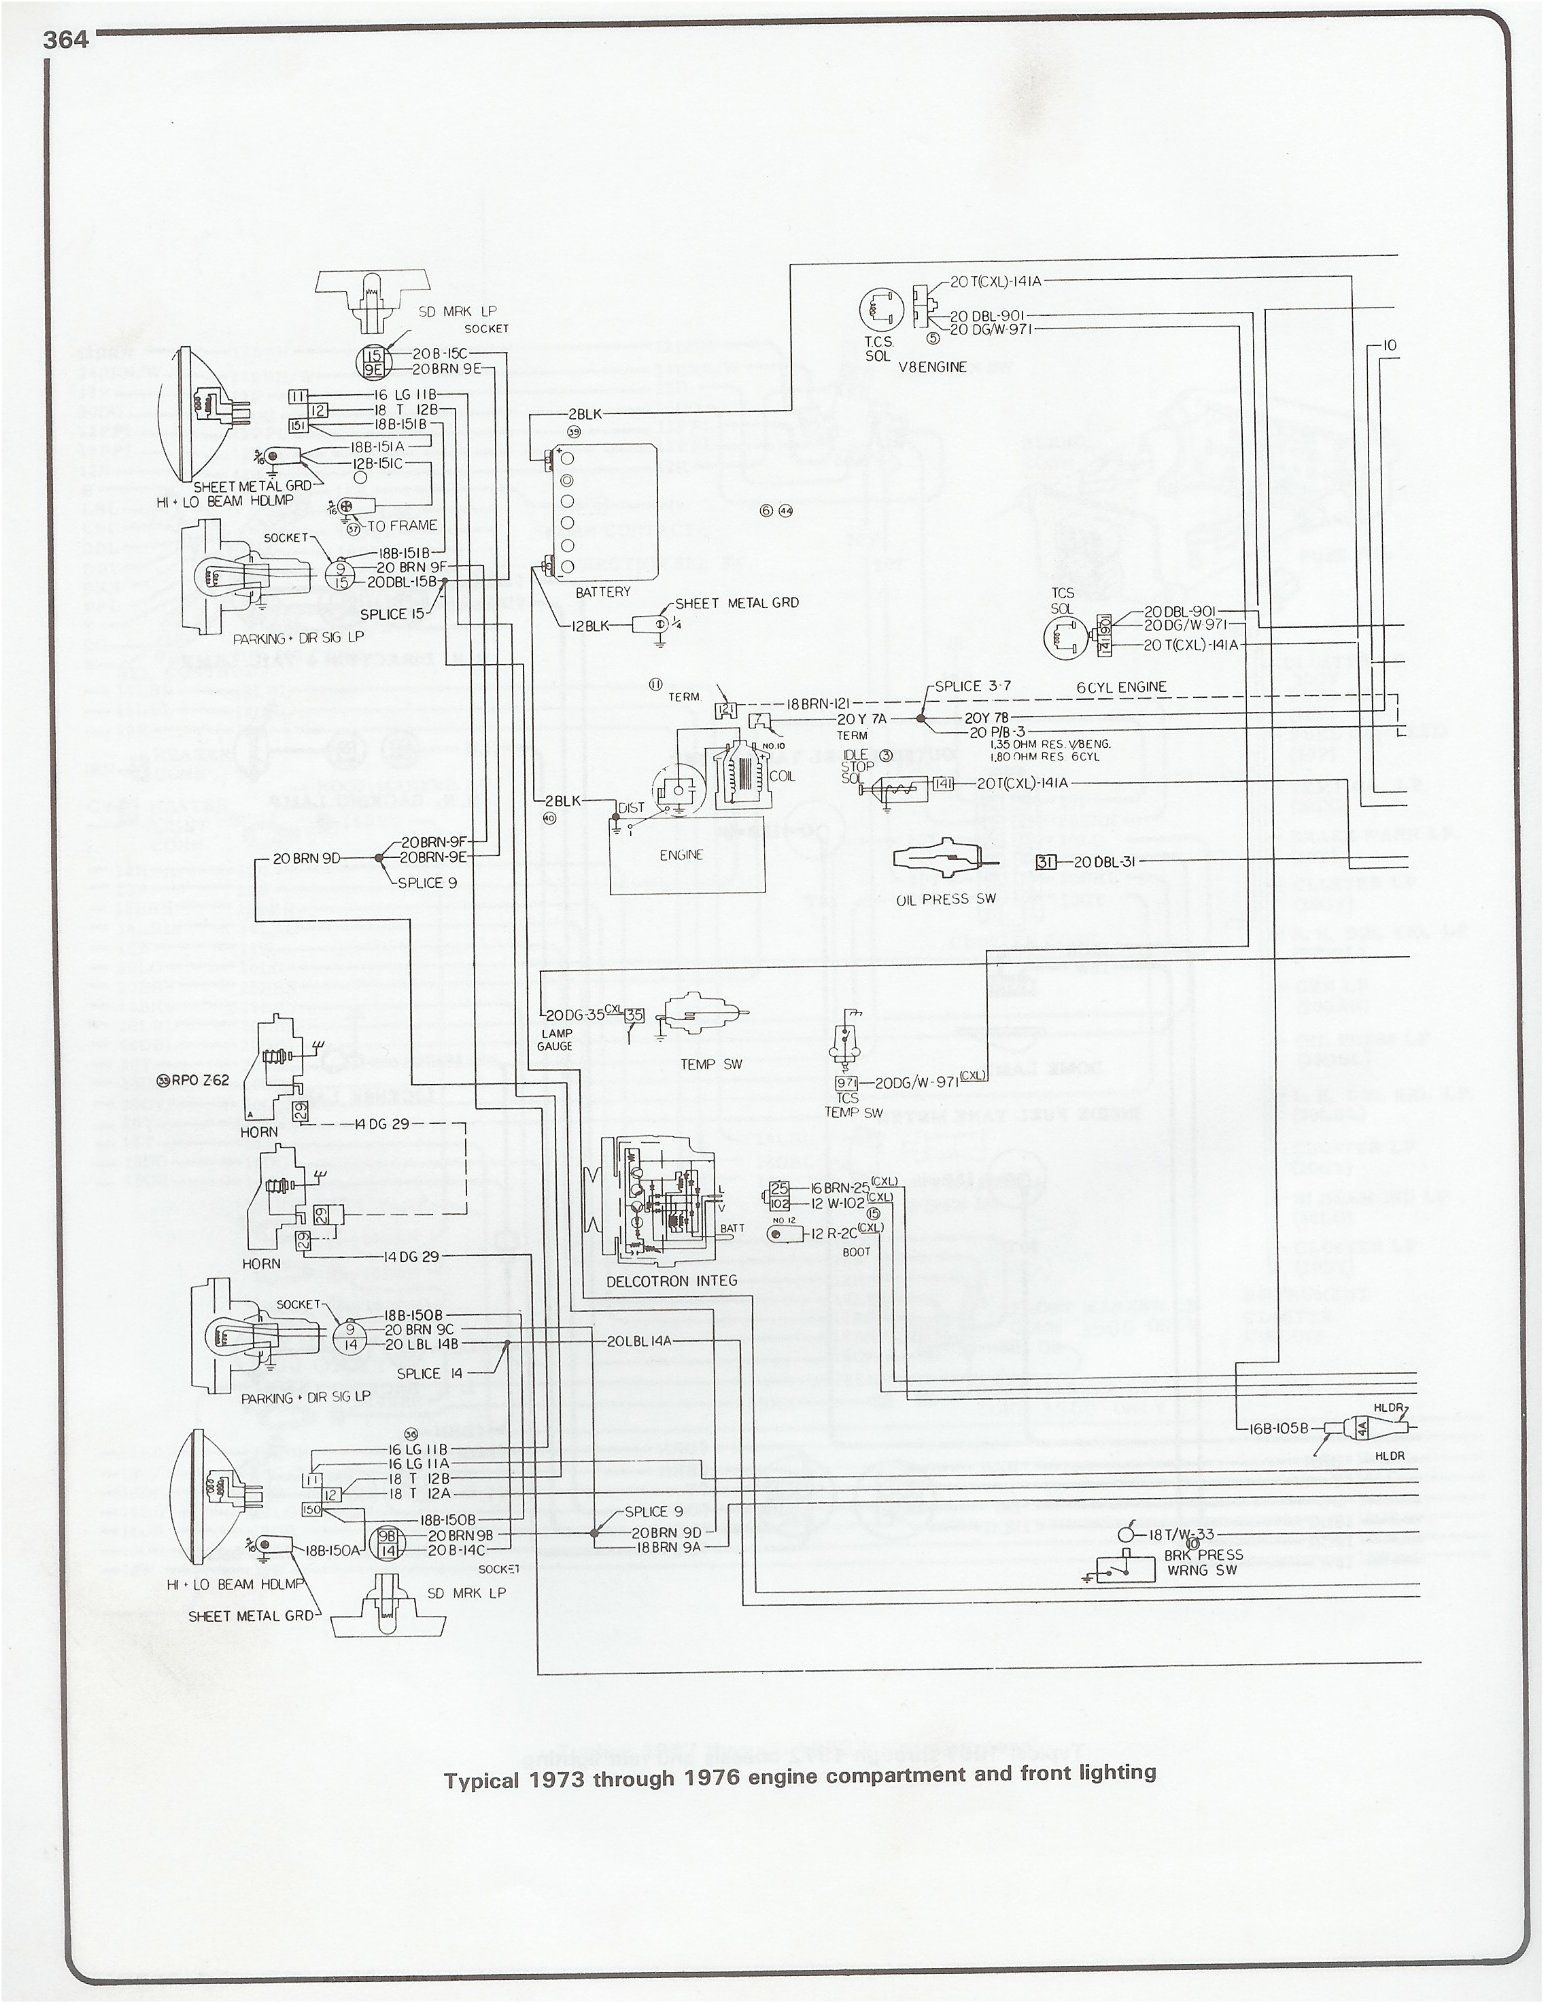 wiring diagram 1973 1976 chevy pickup chevy wiring diagramwiring diagram 1973 1976 chevy pickup chevy wiring [ 1544 x 2003 Pixel ]